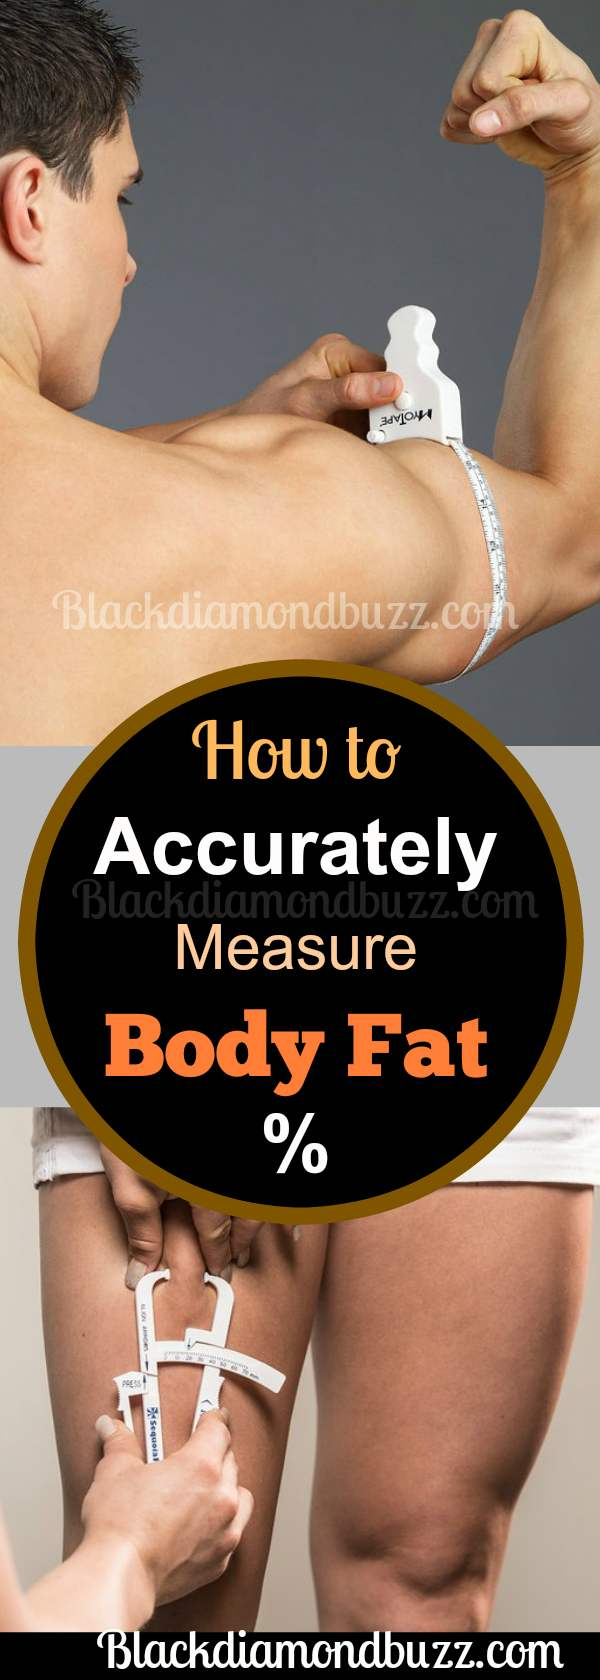 how to measure body fat percentage accurately